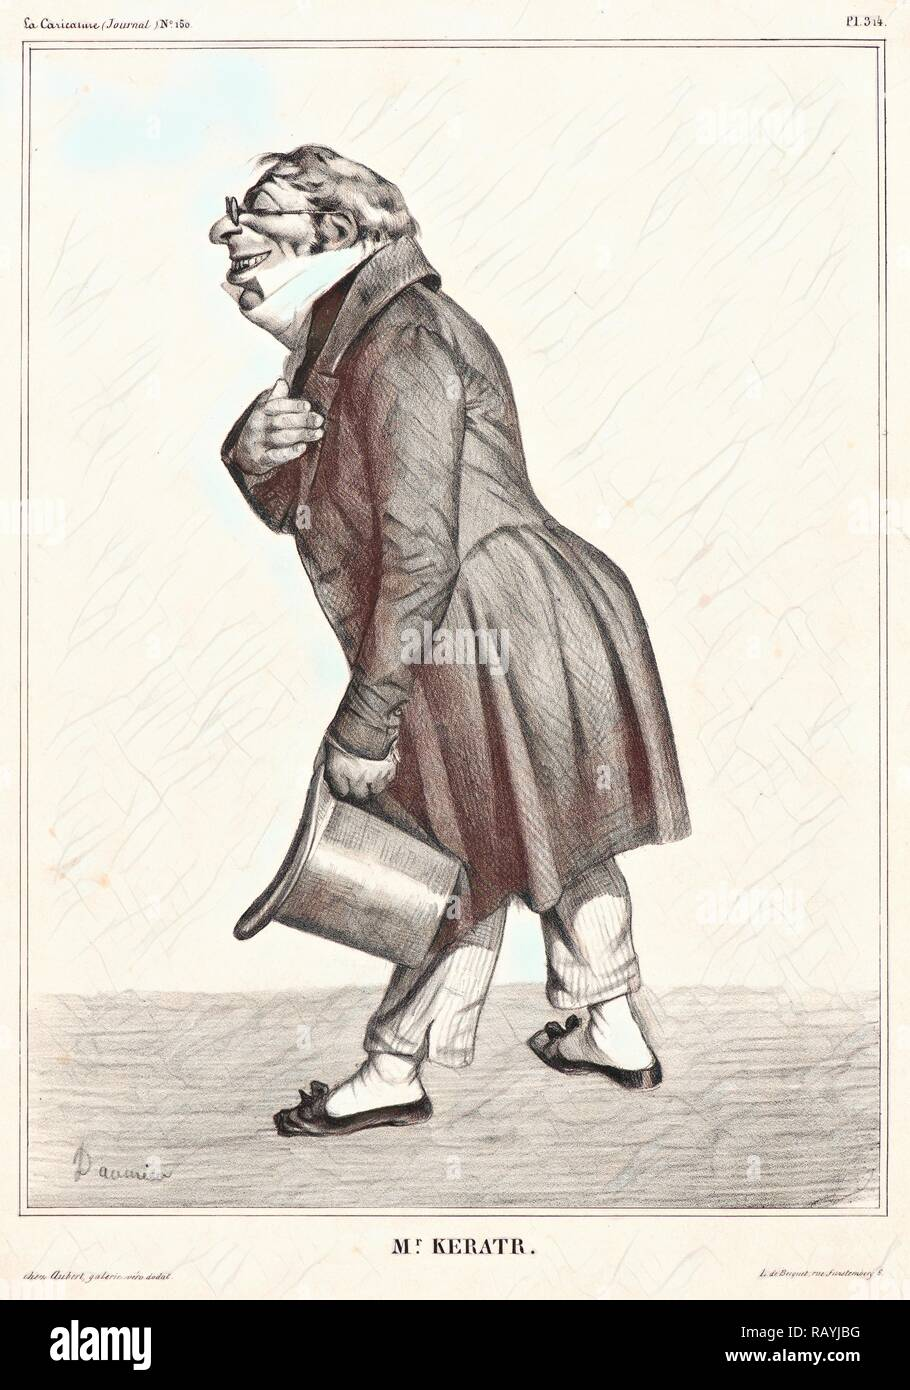 Honoré Daumier (French, 1808 - 1879). M. Keratr., 1833. Lithograph on white wove paper. Image: 278 mm x 204 mm (10.94 reimagined - Stock Image